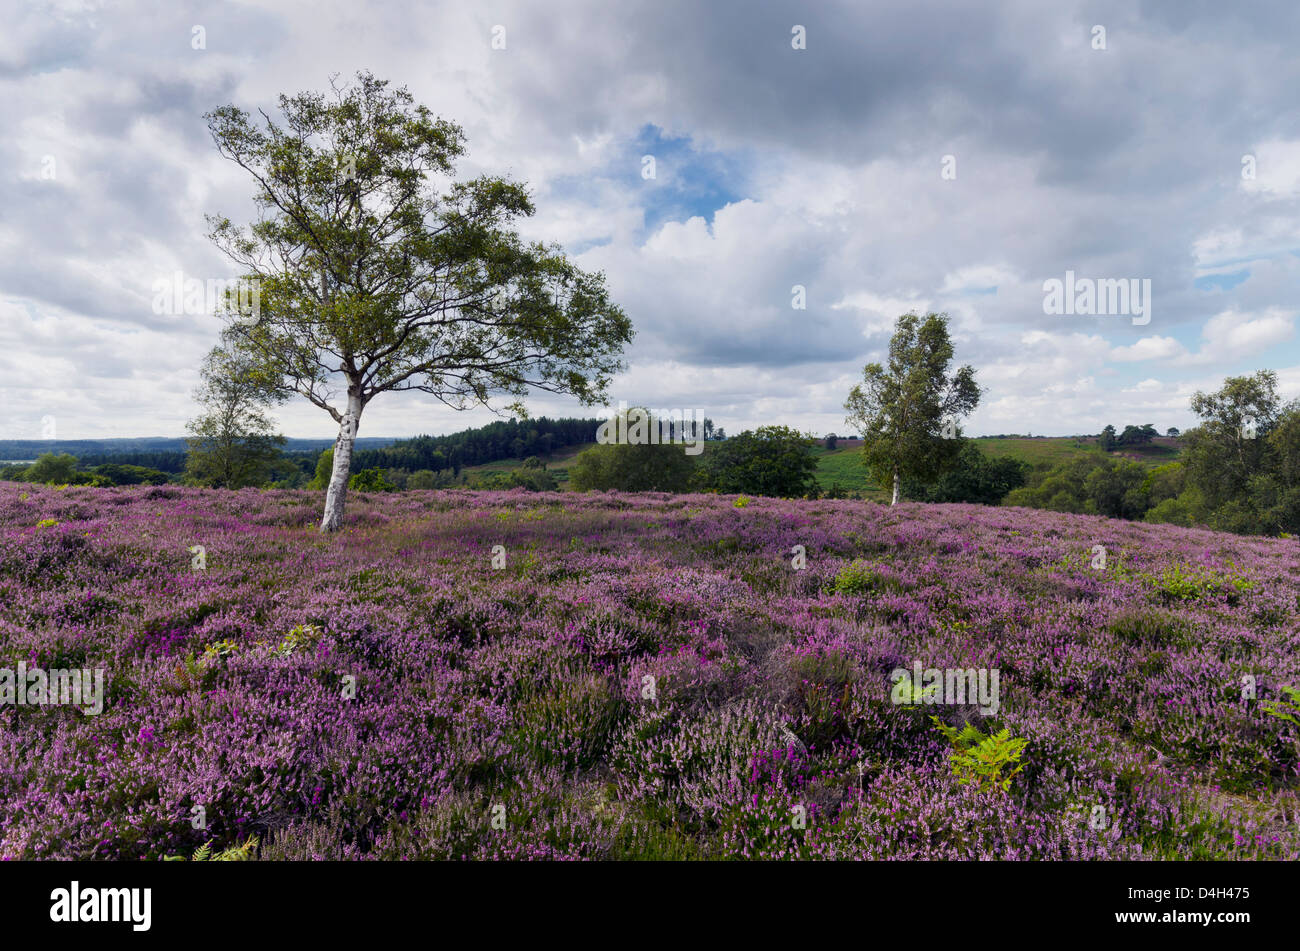 Purple heather in bloom at Rockford Common in the New Forest in Hampshire. - Stock Image